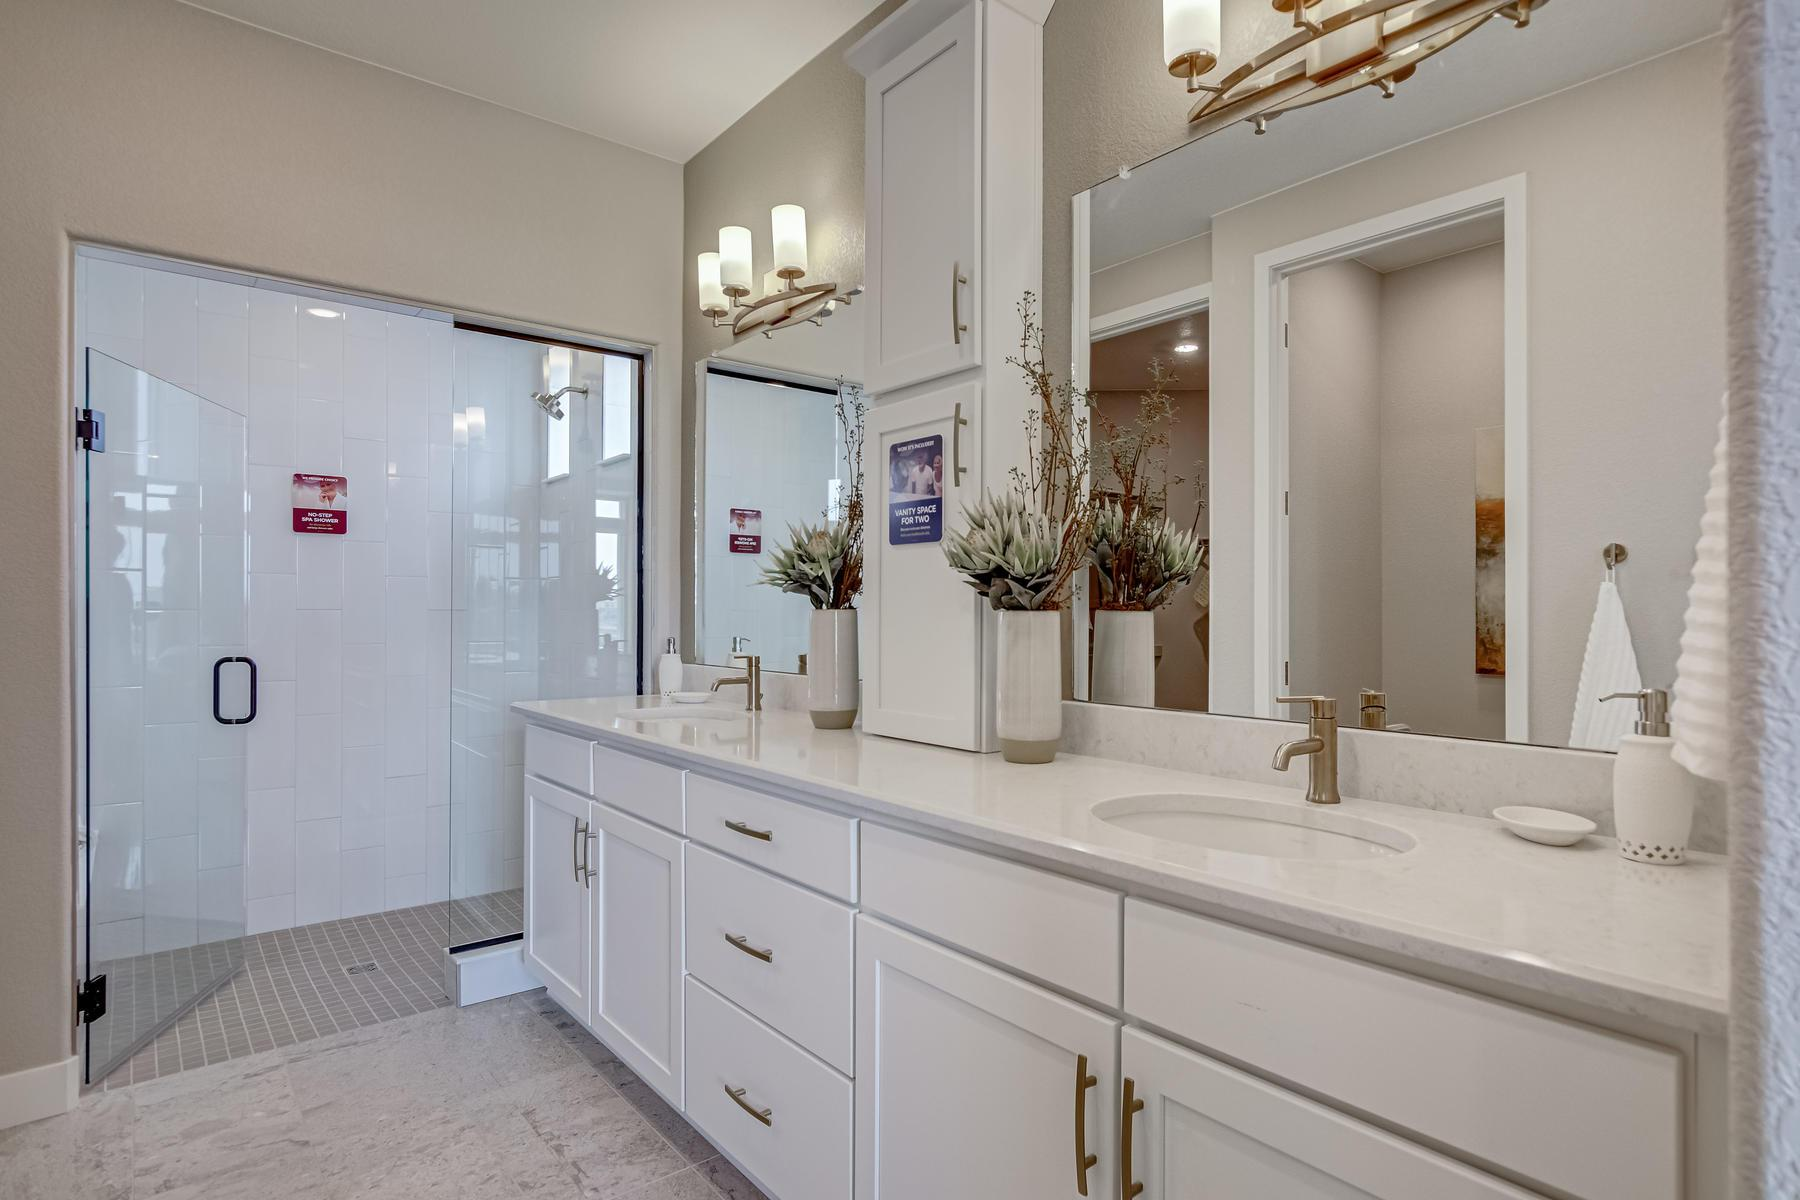 Bathroom featured in the Harbor By OakwoodLife in Denver, CO